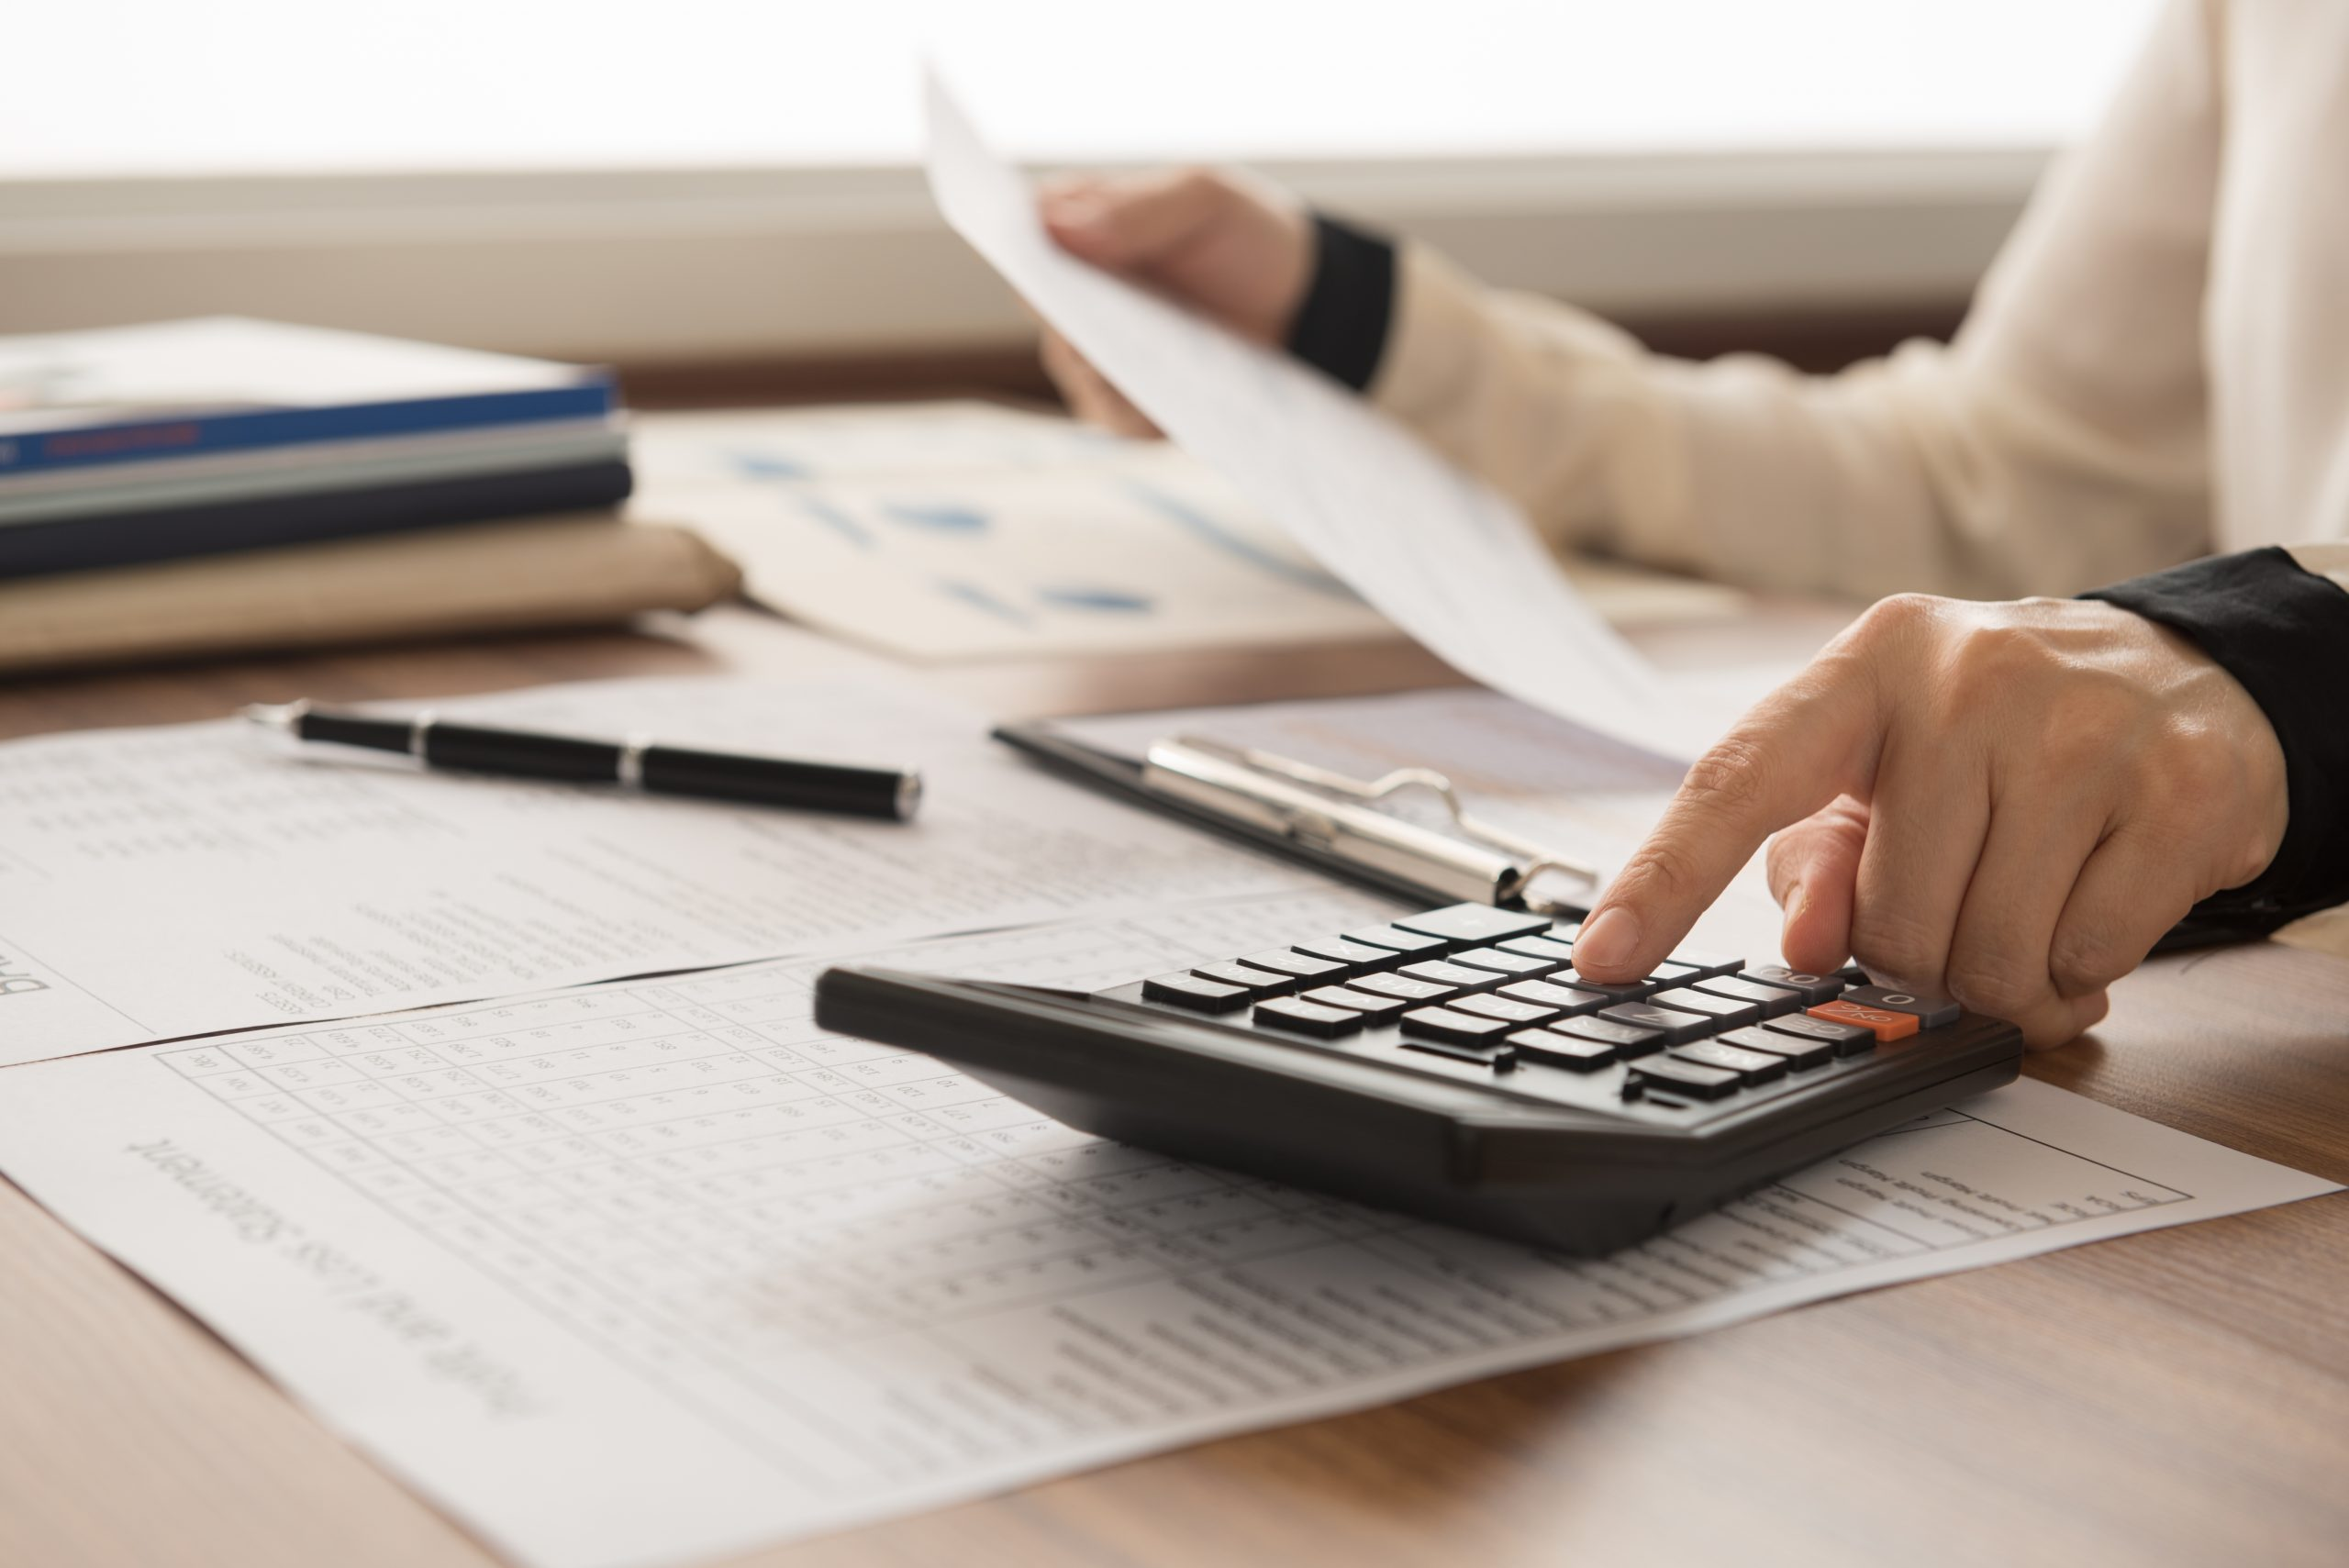 bookkeeper inspector calculated and checking balance account. accounting and auditing concept.